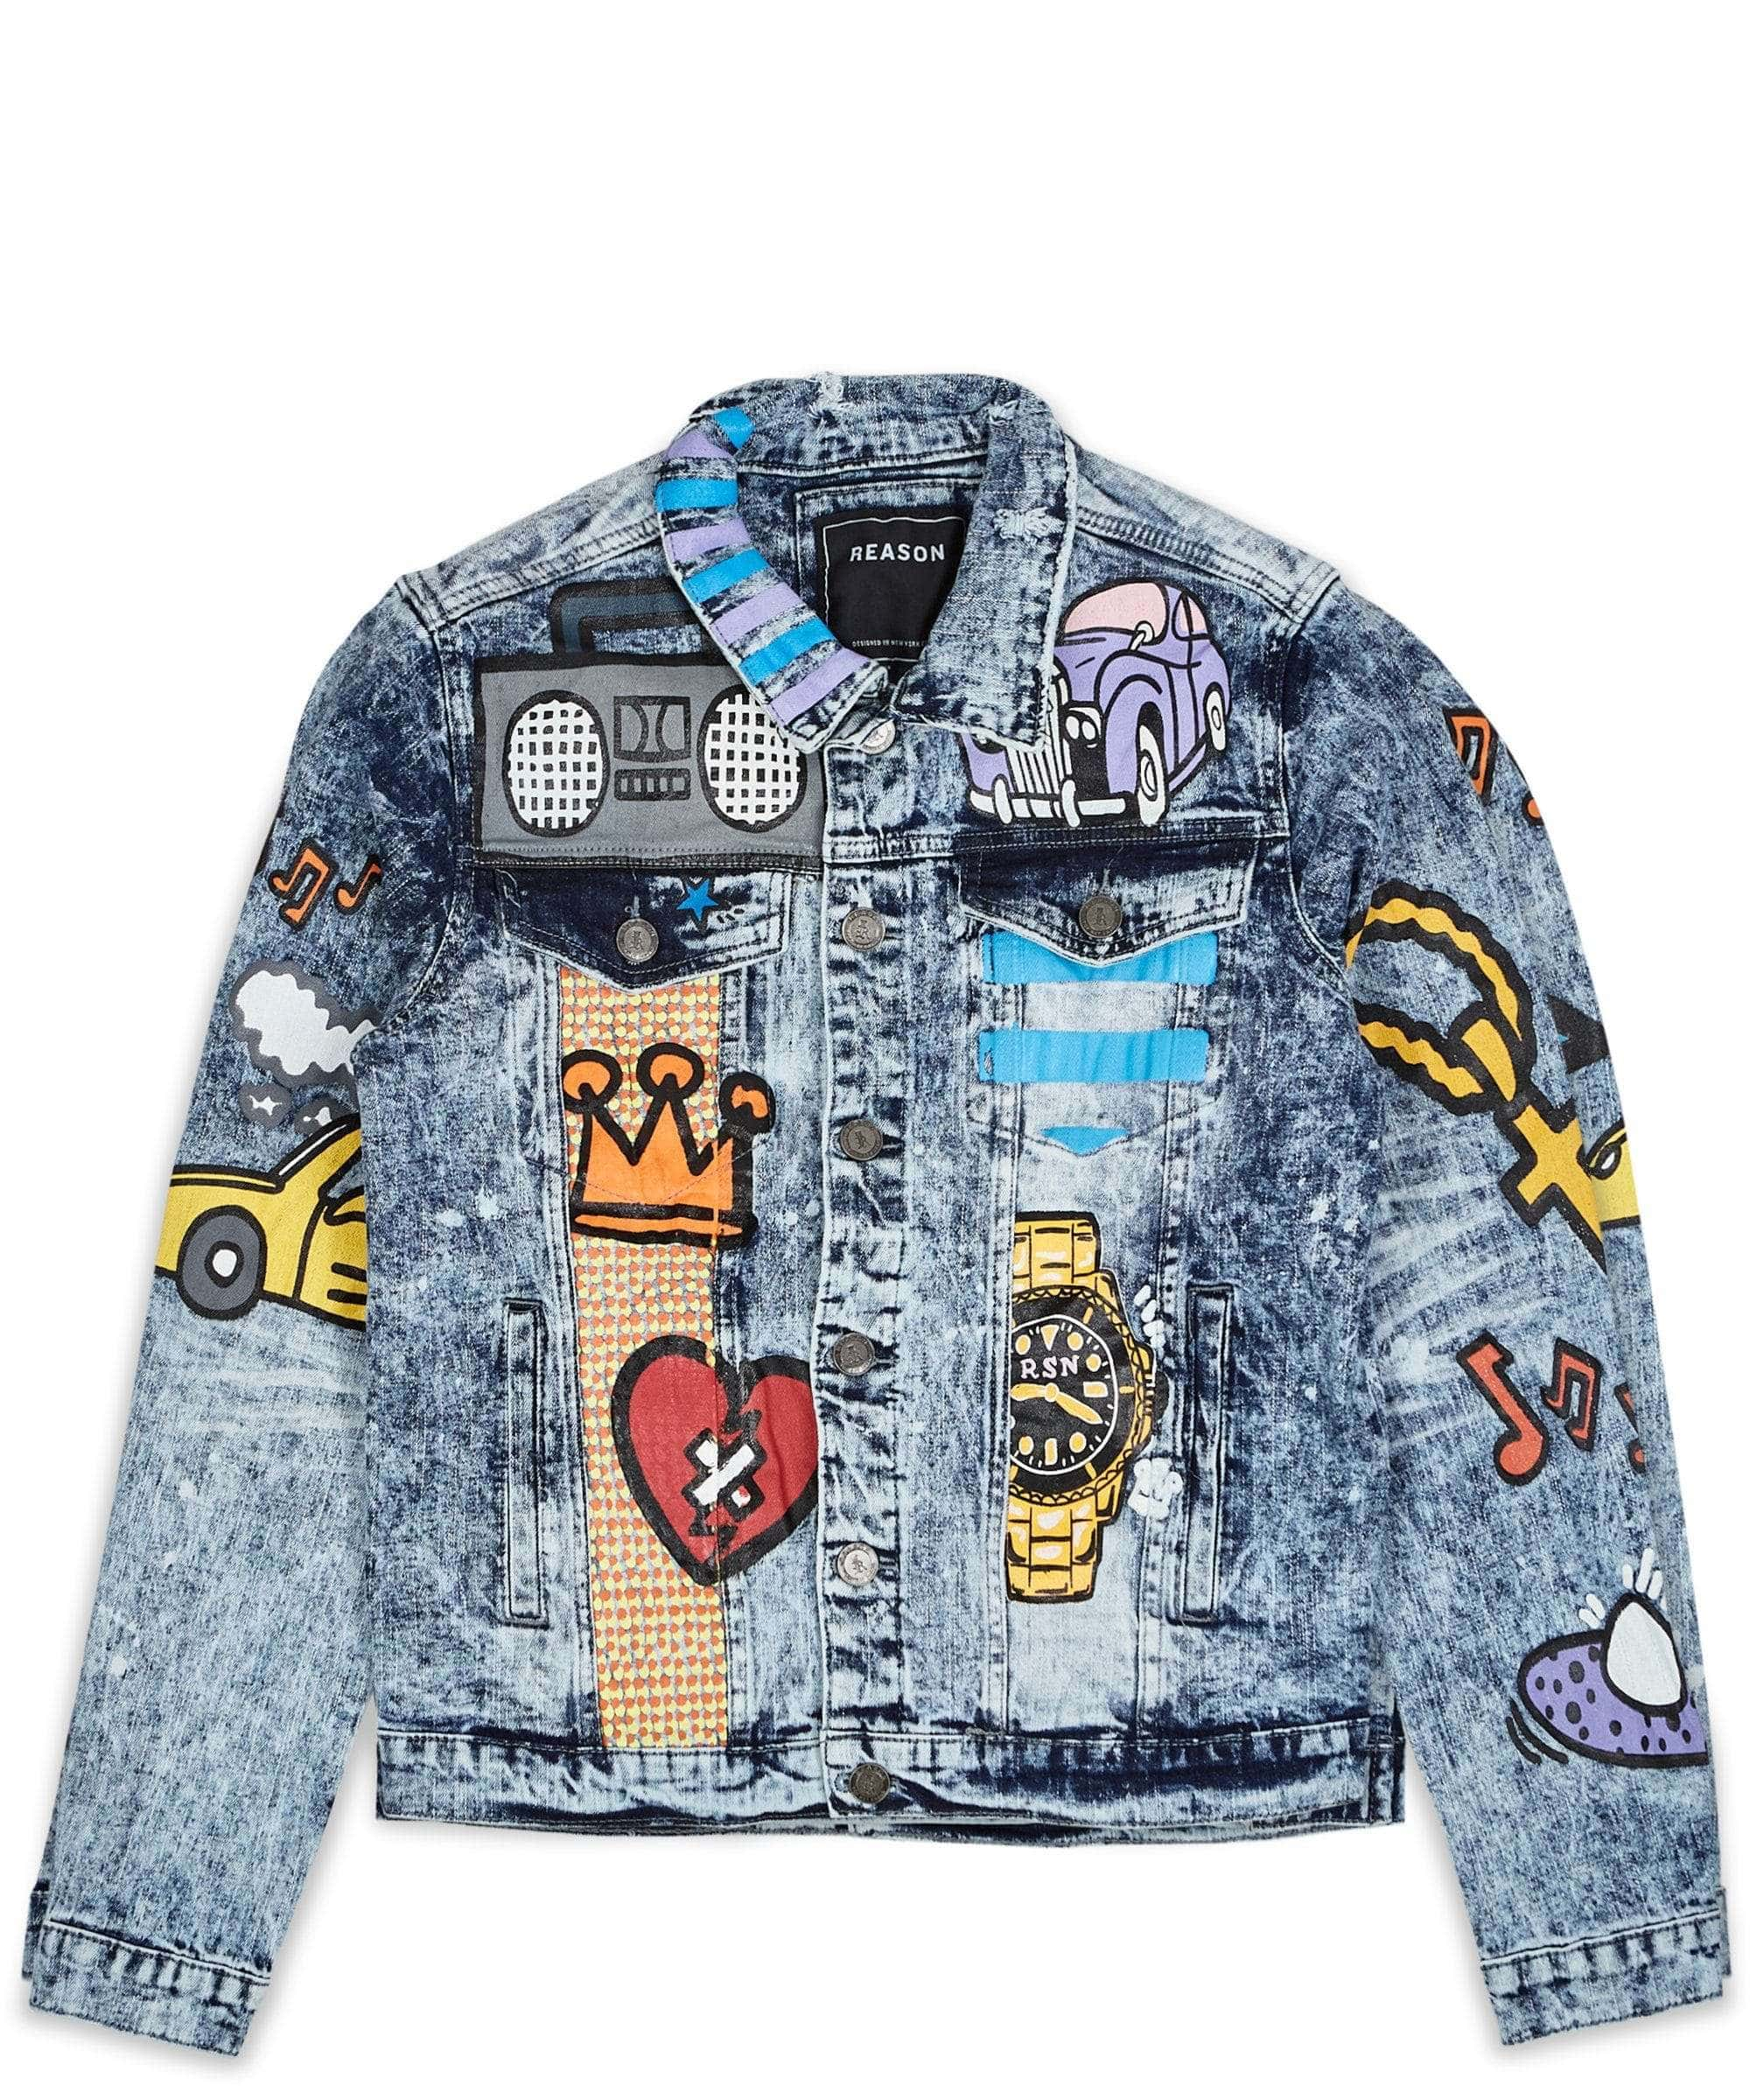 ALICE DENIM JACKET Reason Clothing